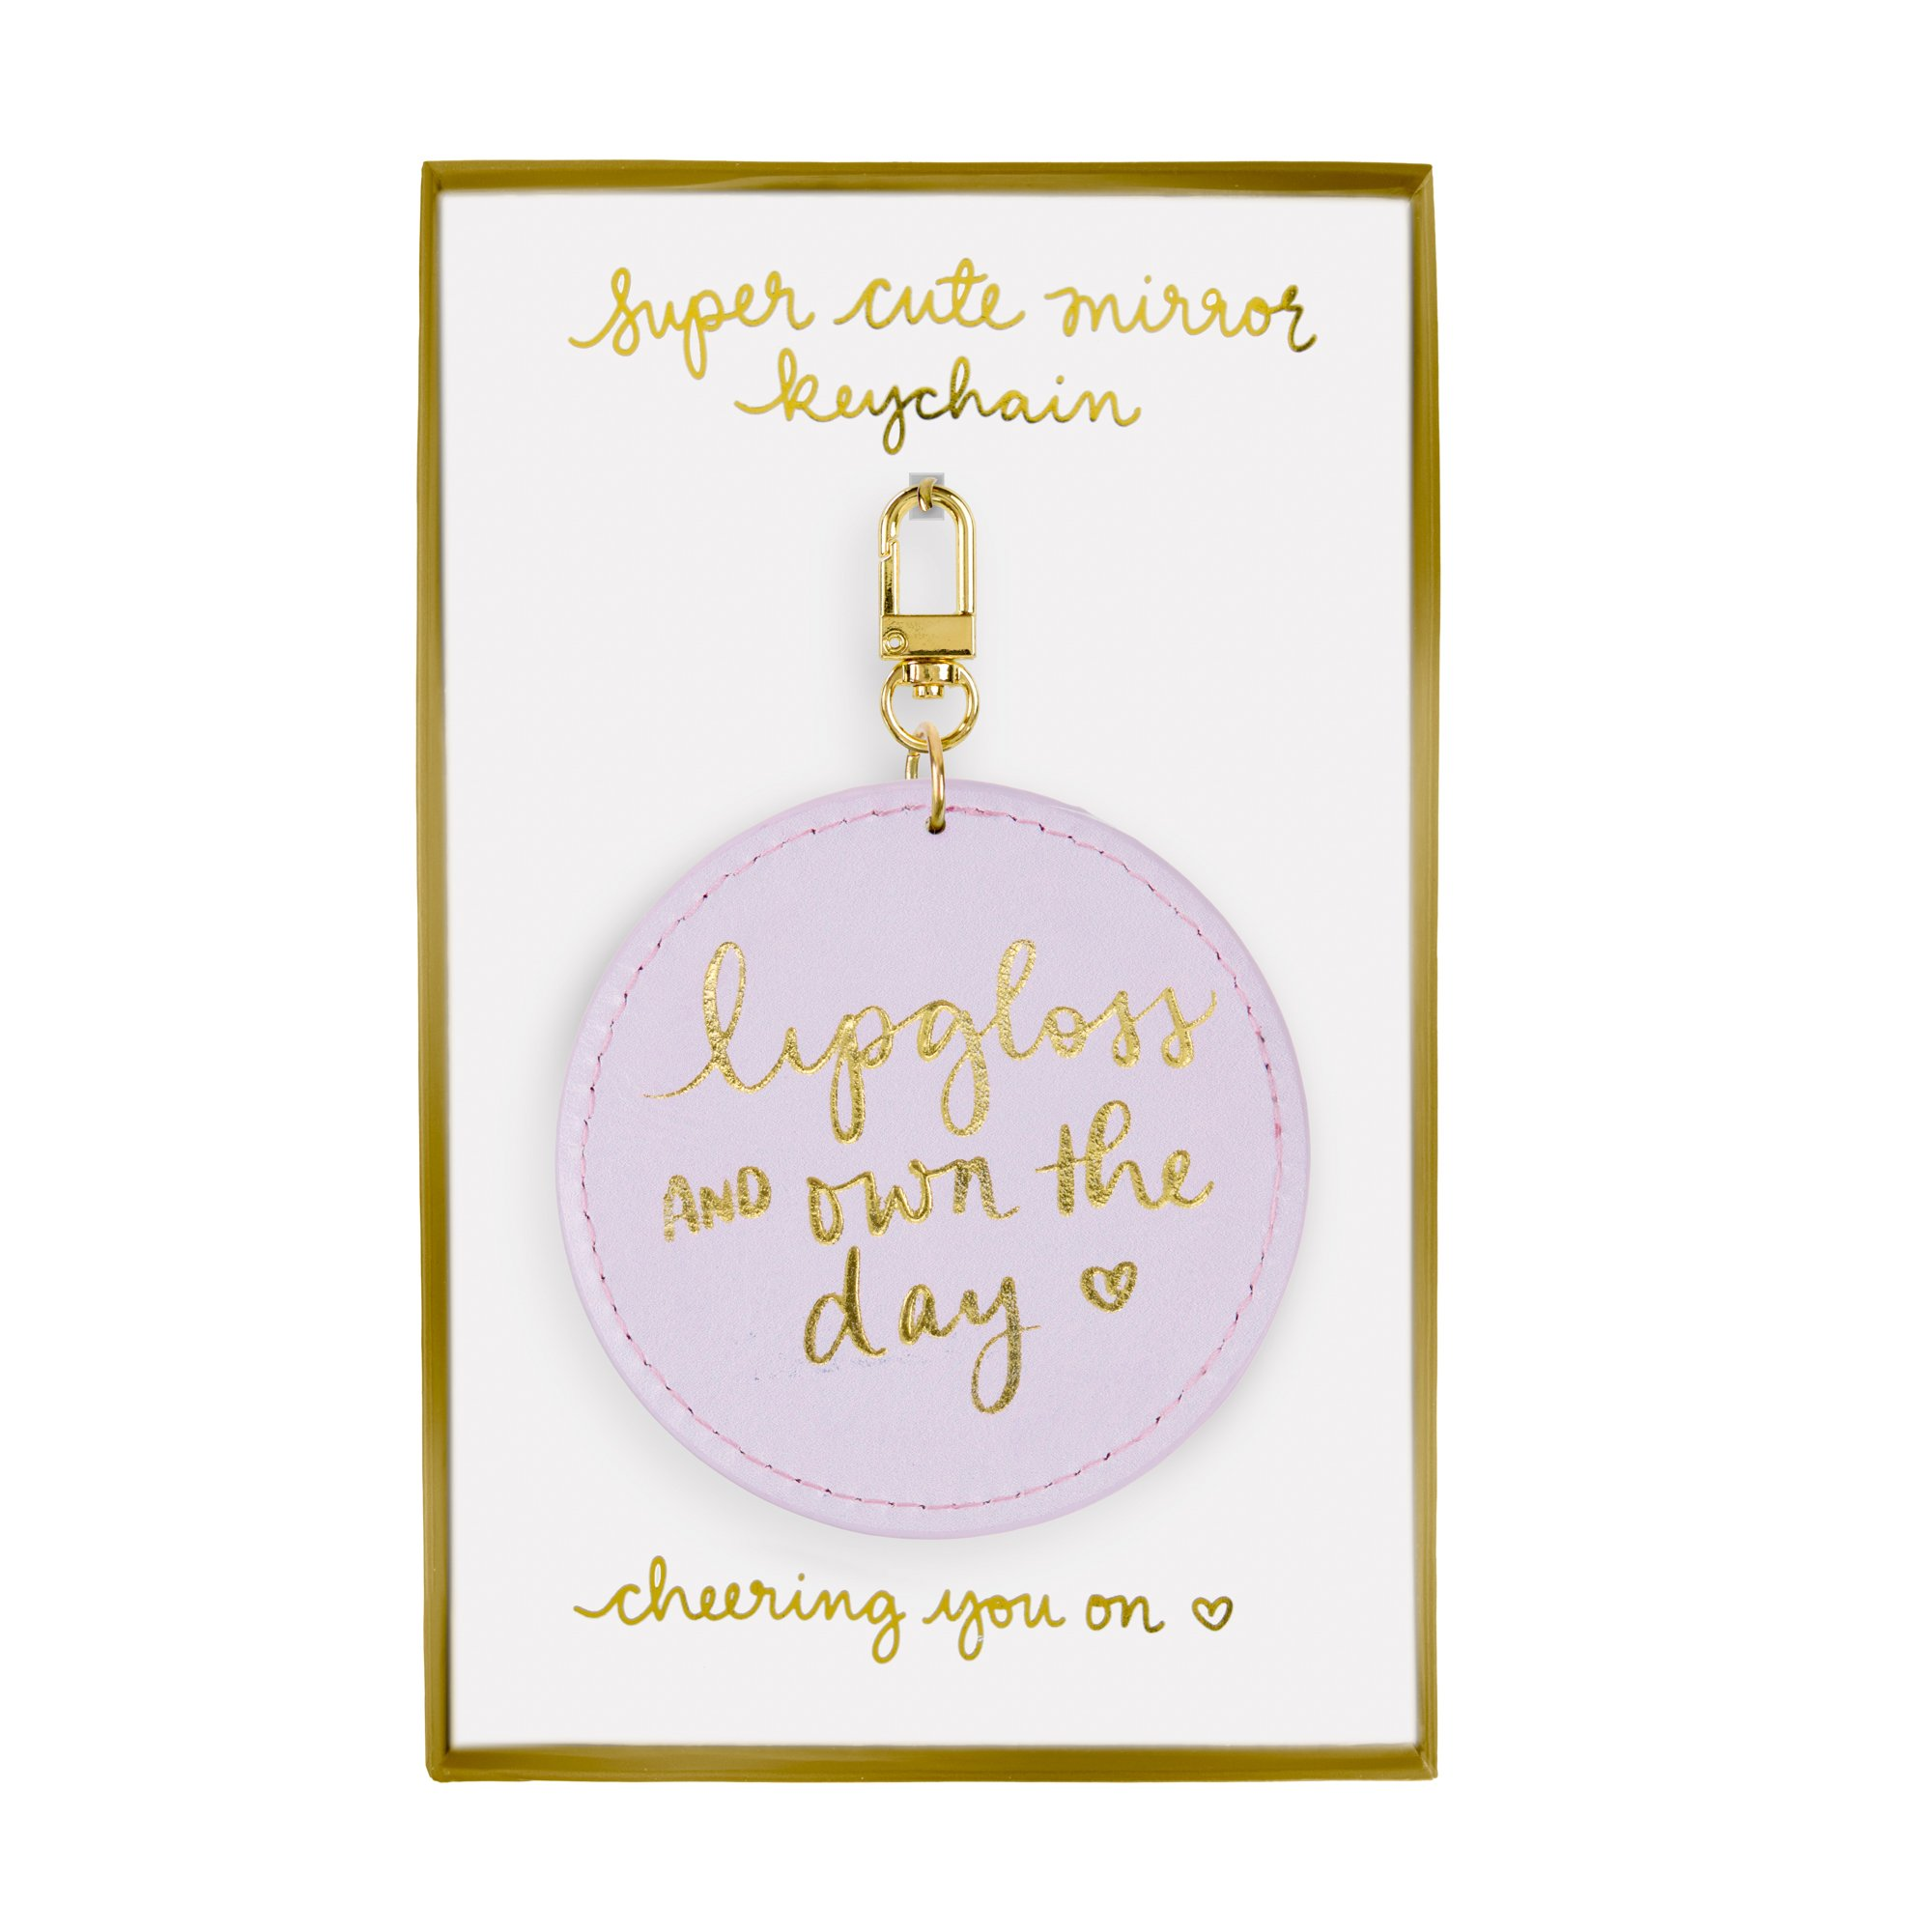 Eccolo Dayna Lee Small Round Mirror Keychain, Purple, Own the Day